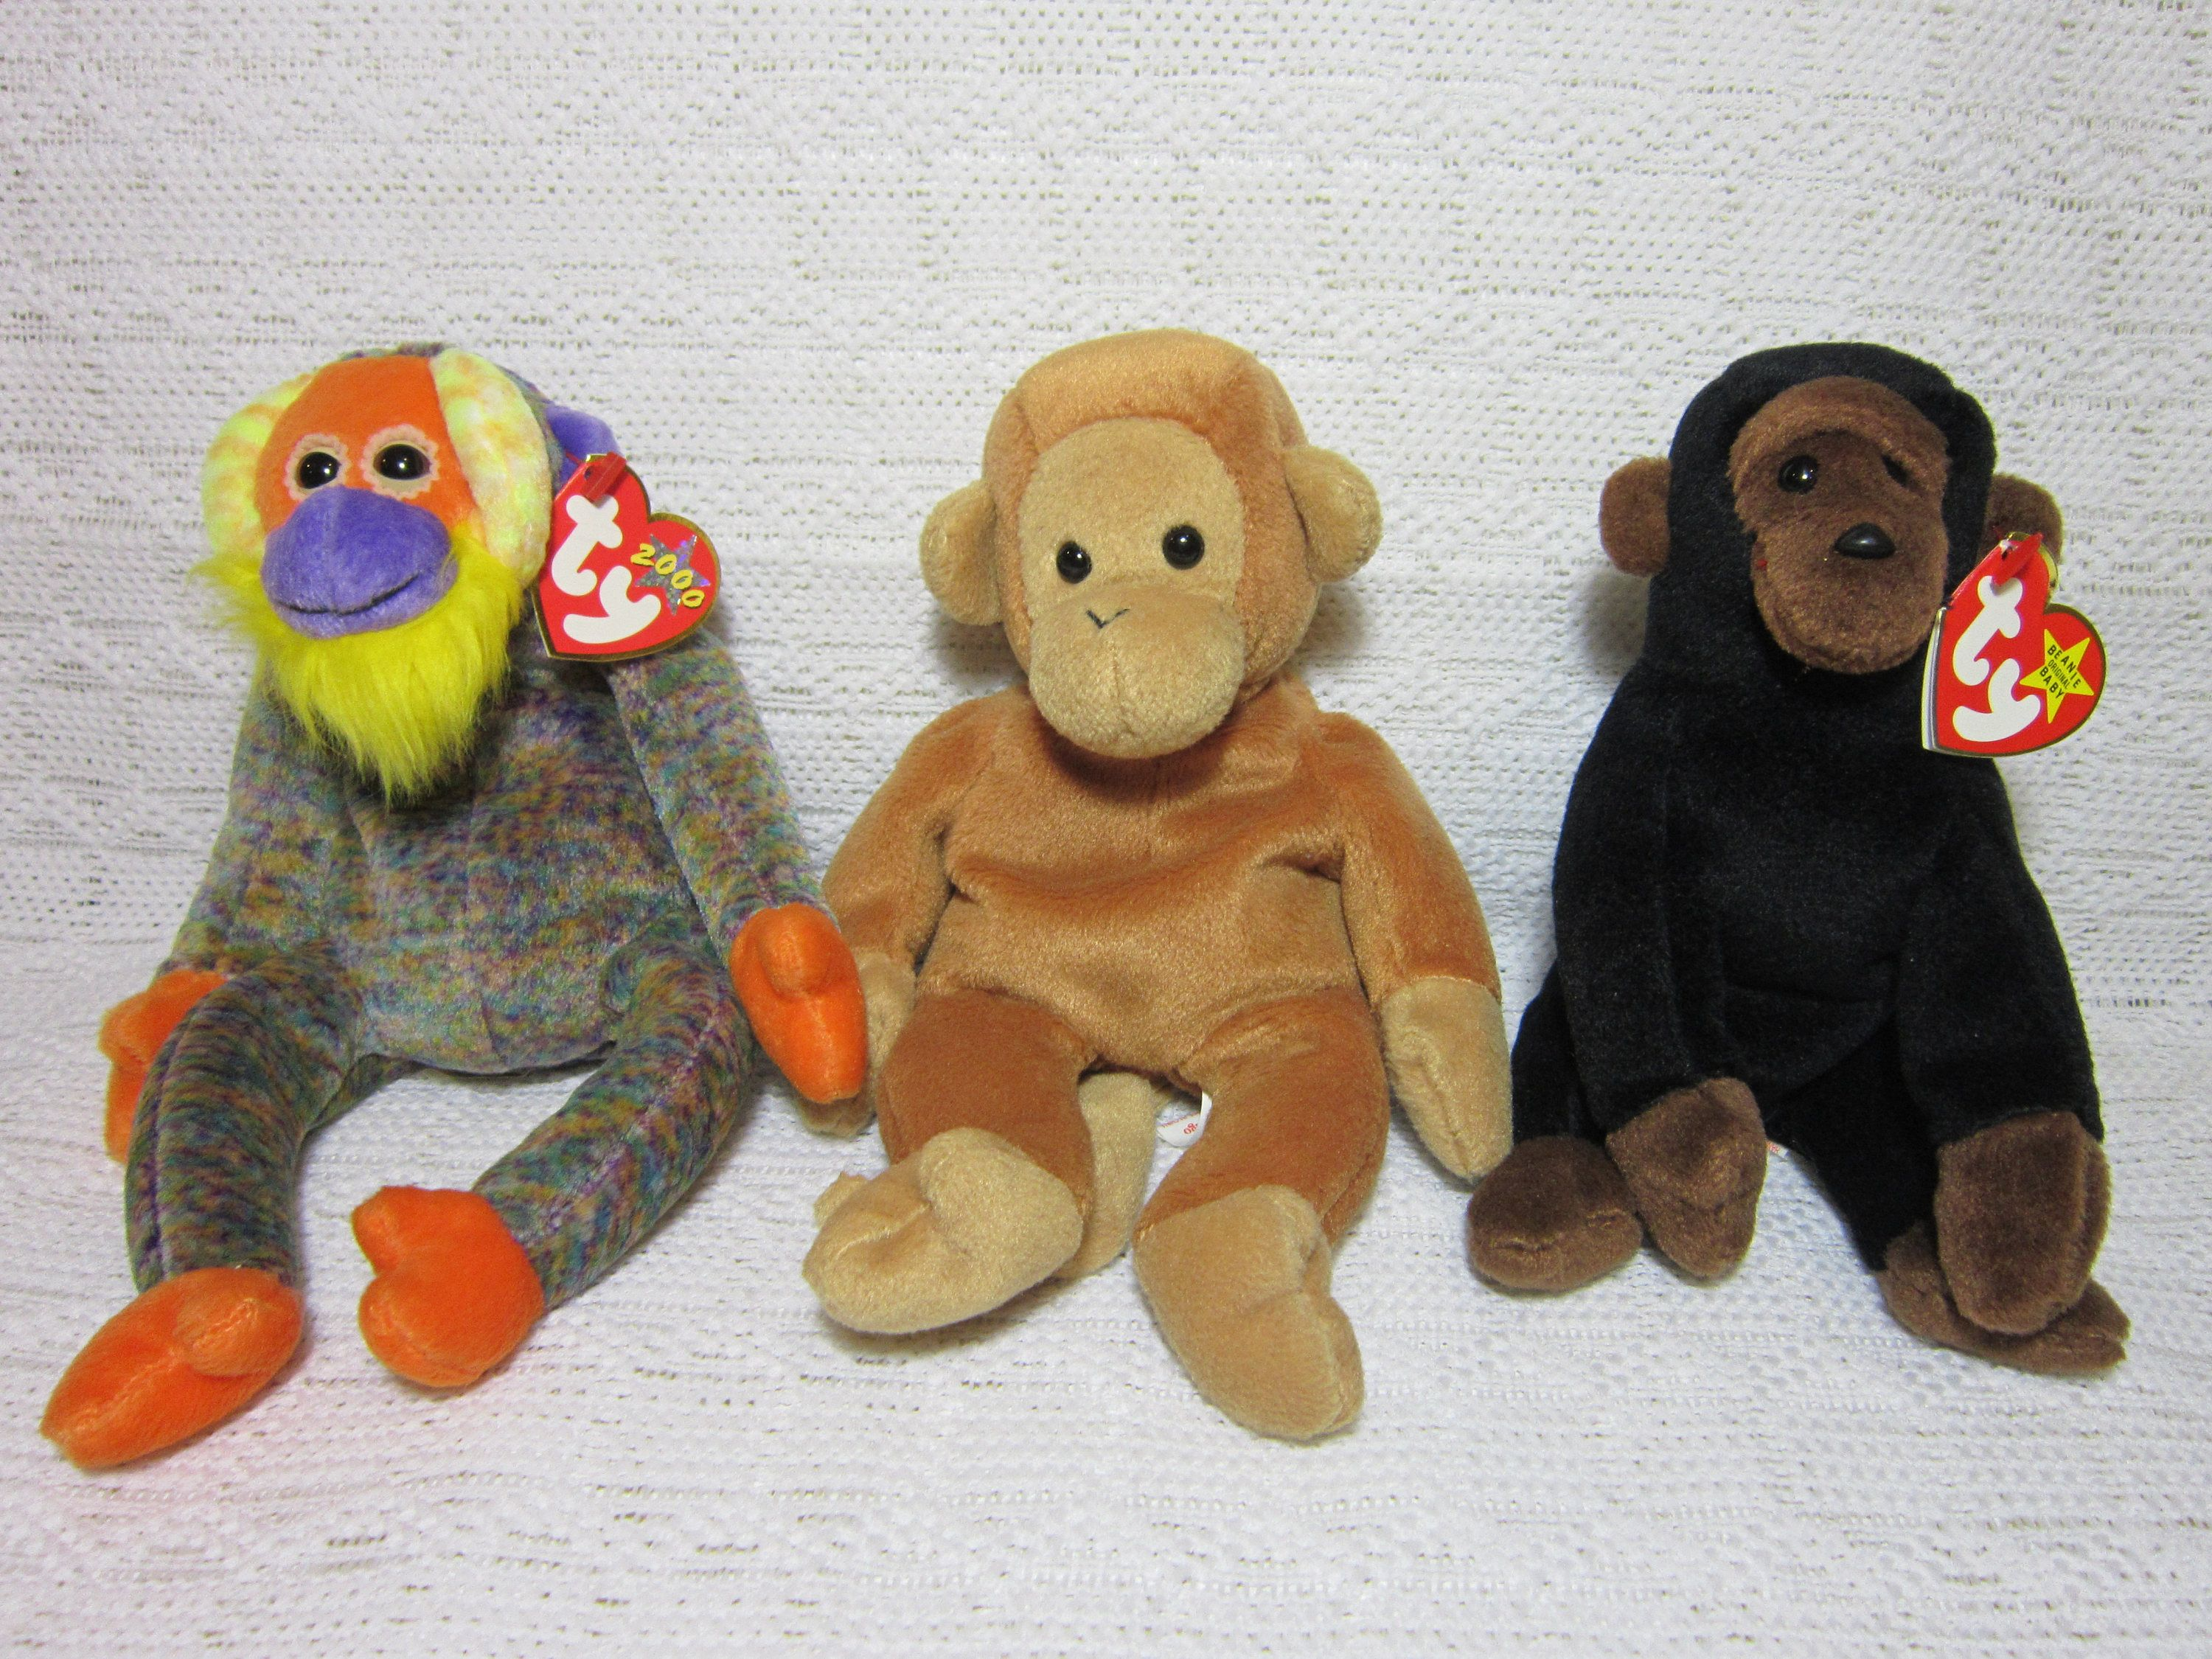 e29acd9229f Collectible Monkey Ty Beanie Babies - Congo the Gorilla